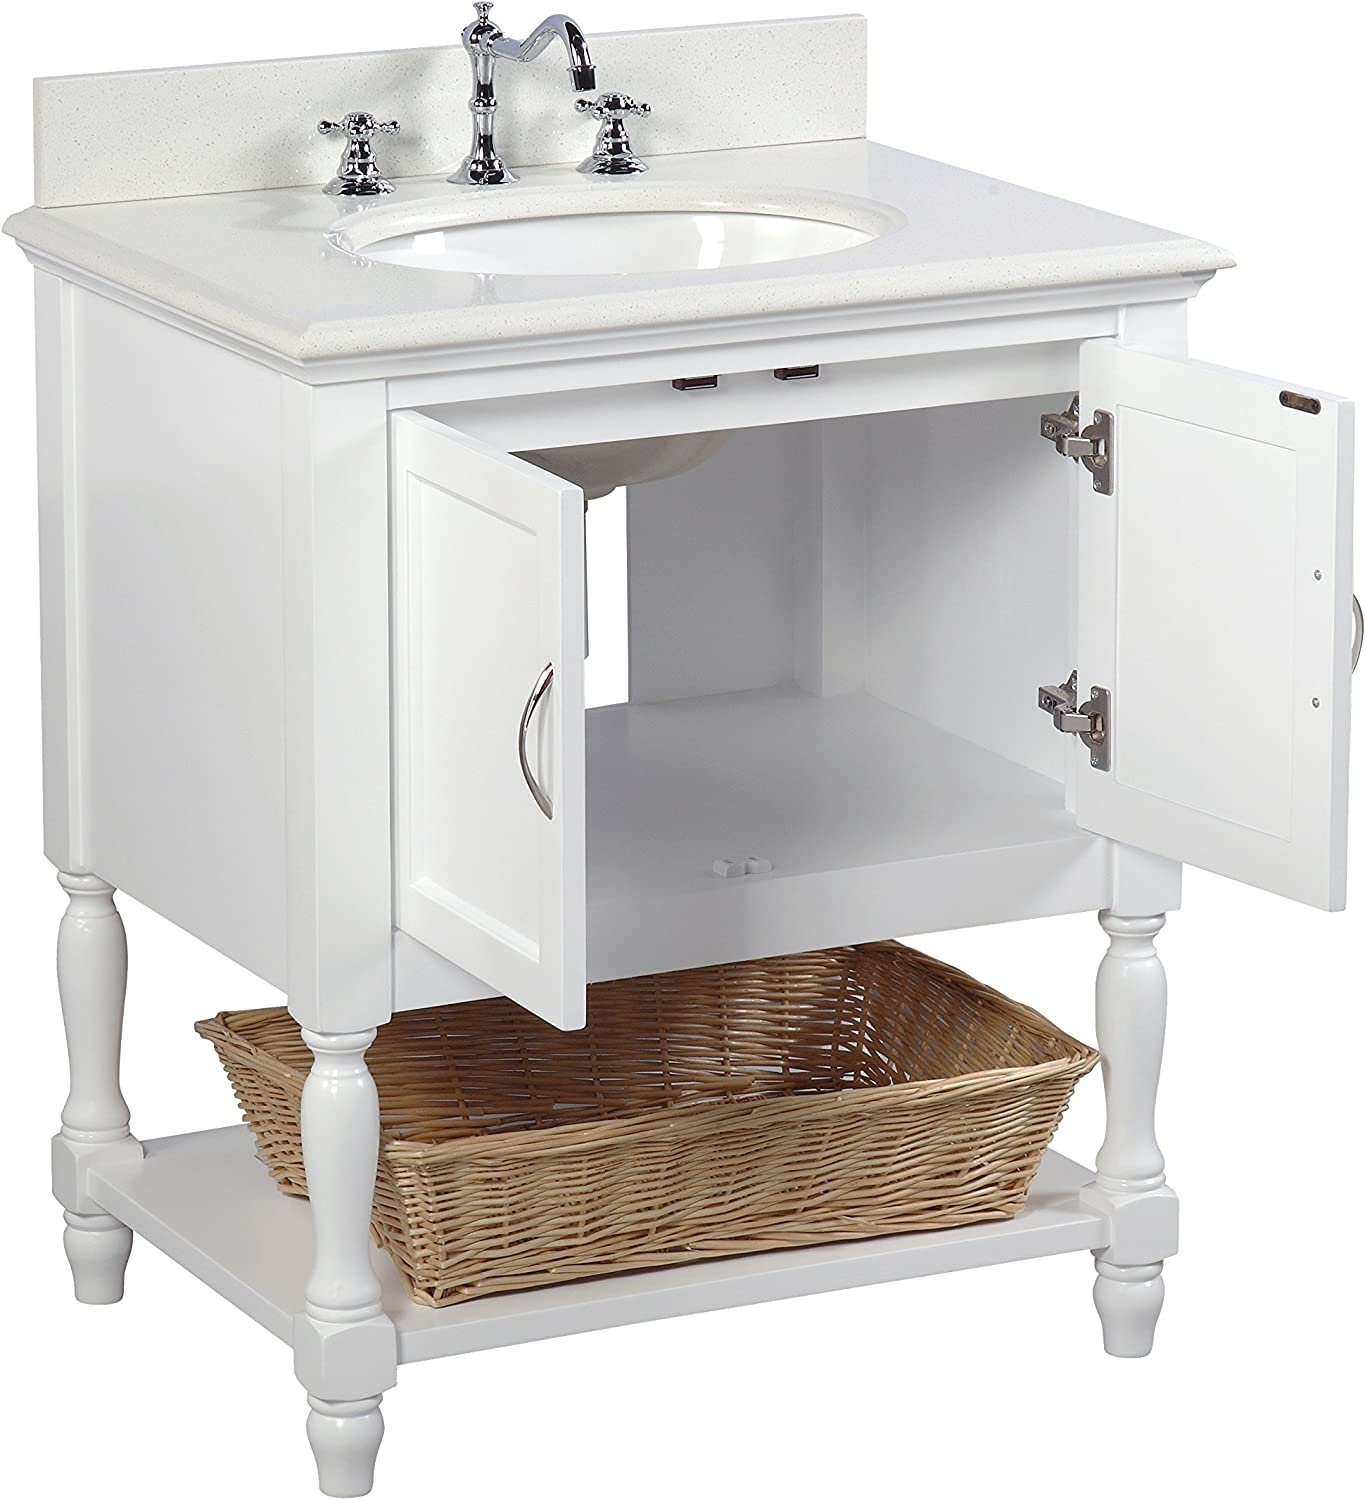 Amazon Com Beverly 30 Inch Bathroom Vanity Quartz White Includes White Cabinet With Stunning Quartz Countertop And White Ceramic Sink Home Improvement